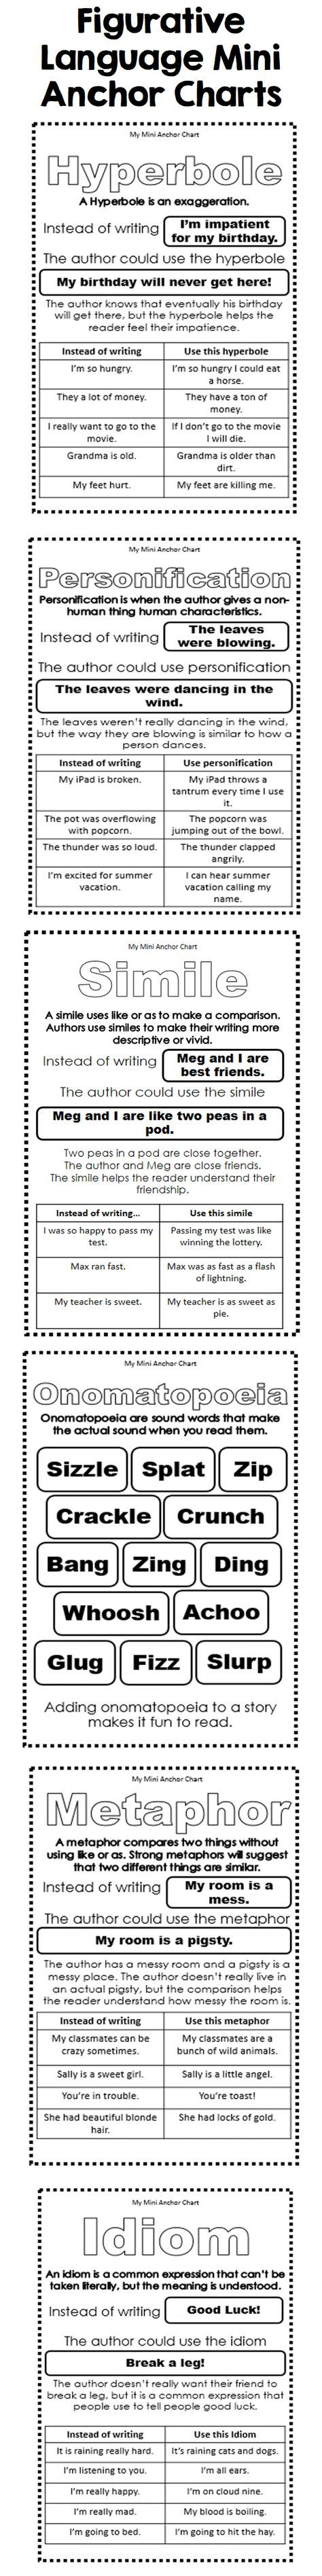 best ideas about figurative language literacy these mini anchor charts are a great addition to an interactive reading or writing notebook